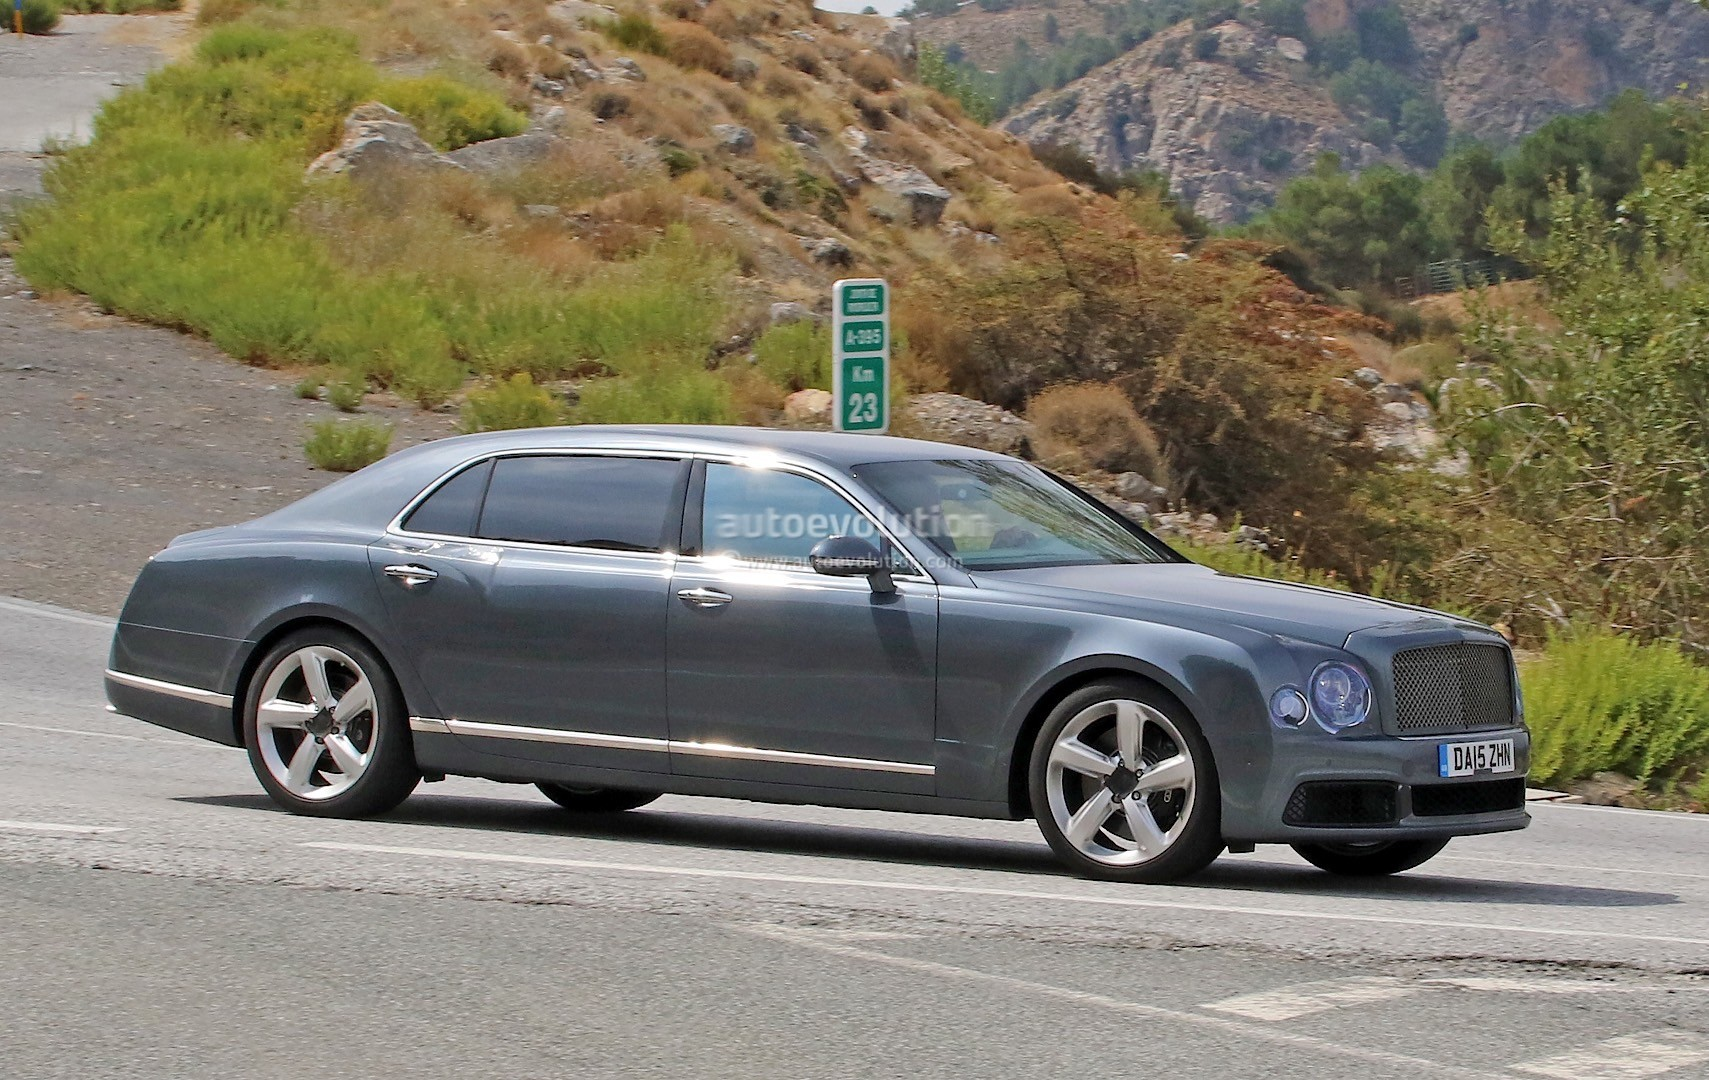 2009 - [Bentley] Mulsanne - Page 10 Bentley-mulsanne-facelift-spotted-with-virtually-no-camouflage-while-driving-in-spain_3